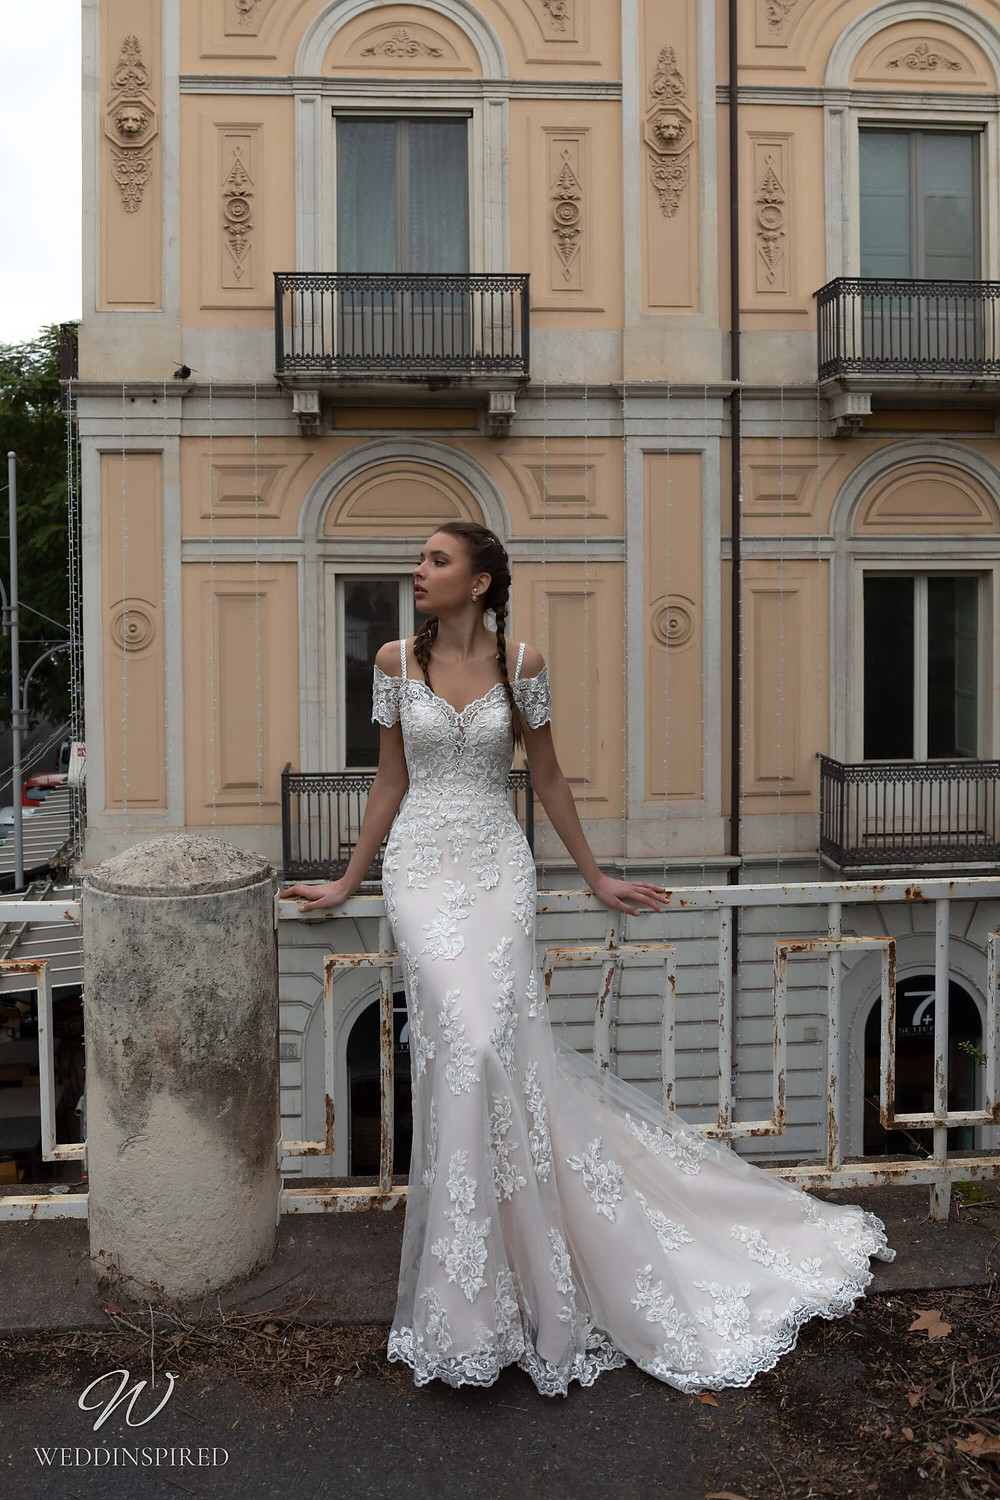 A Naviblue lace off the shoulder mermaid wedding dress with cap sleeves